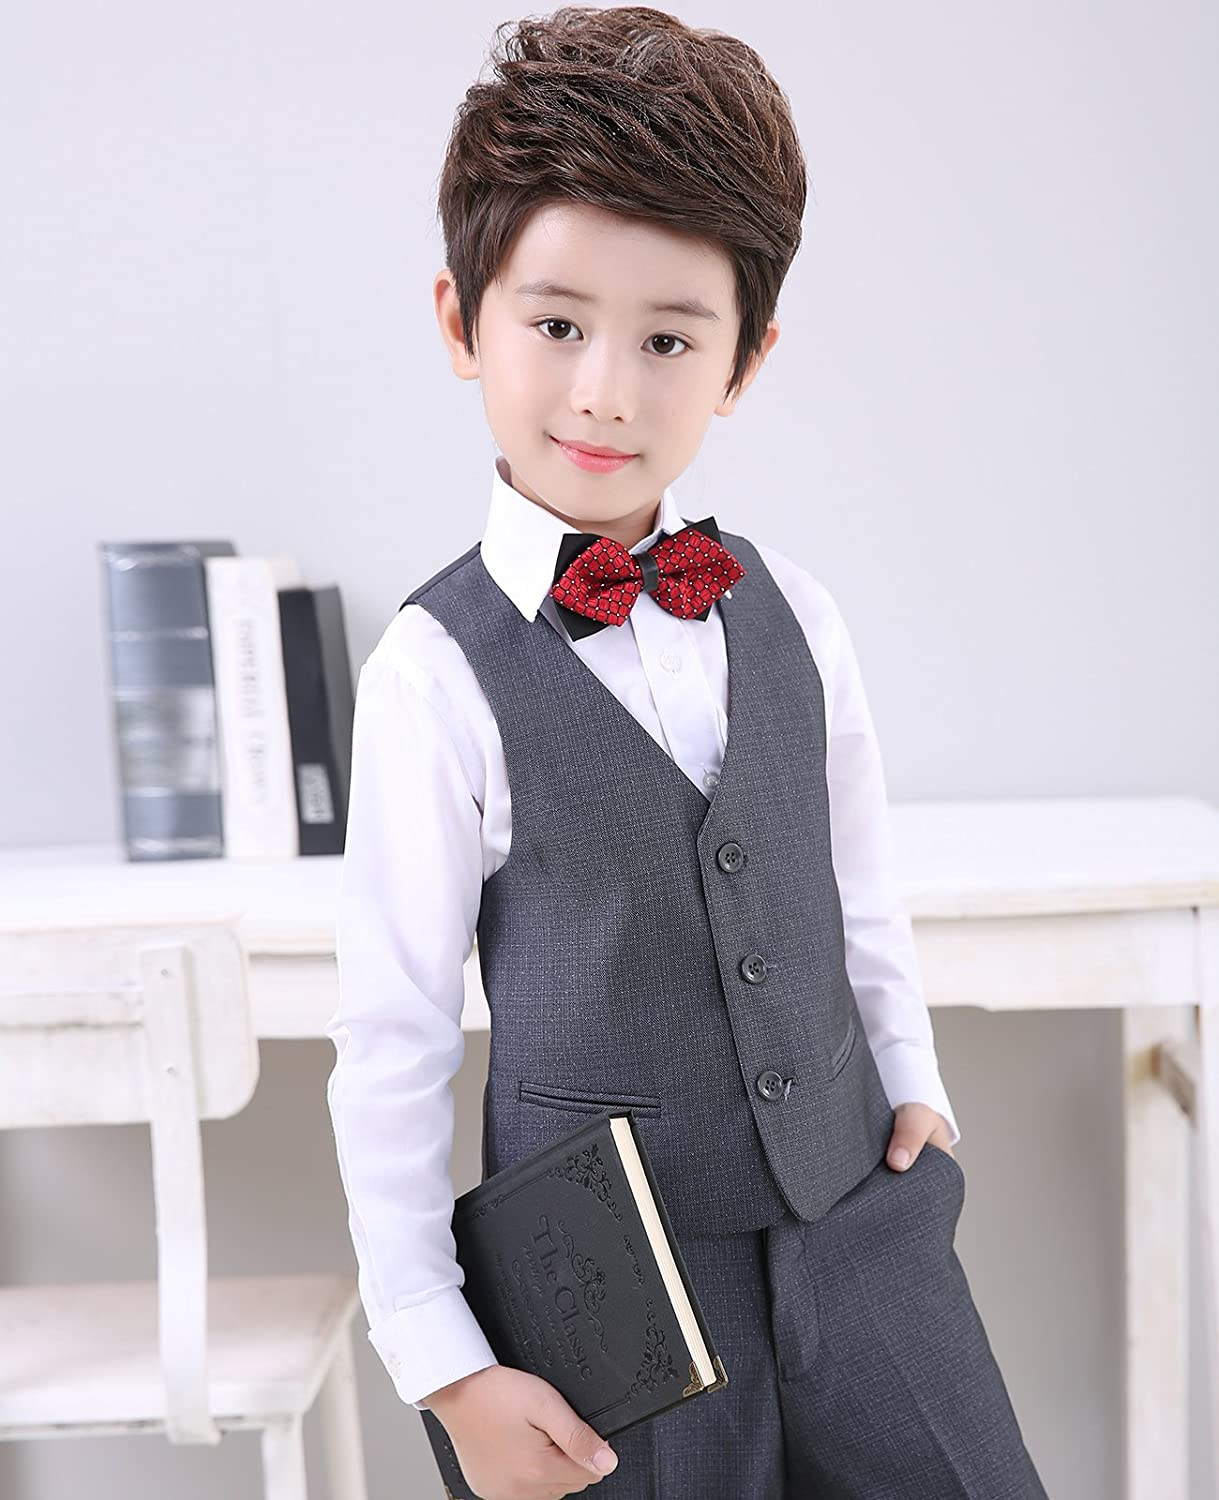 Amazon.com: Boys suits dress wear tuxedo trajes de bodas ...